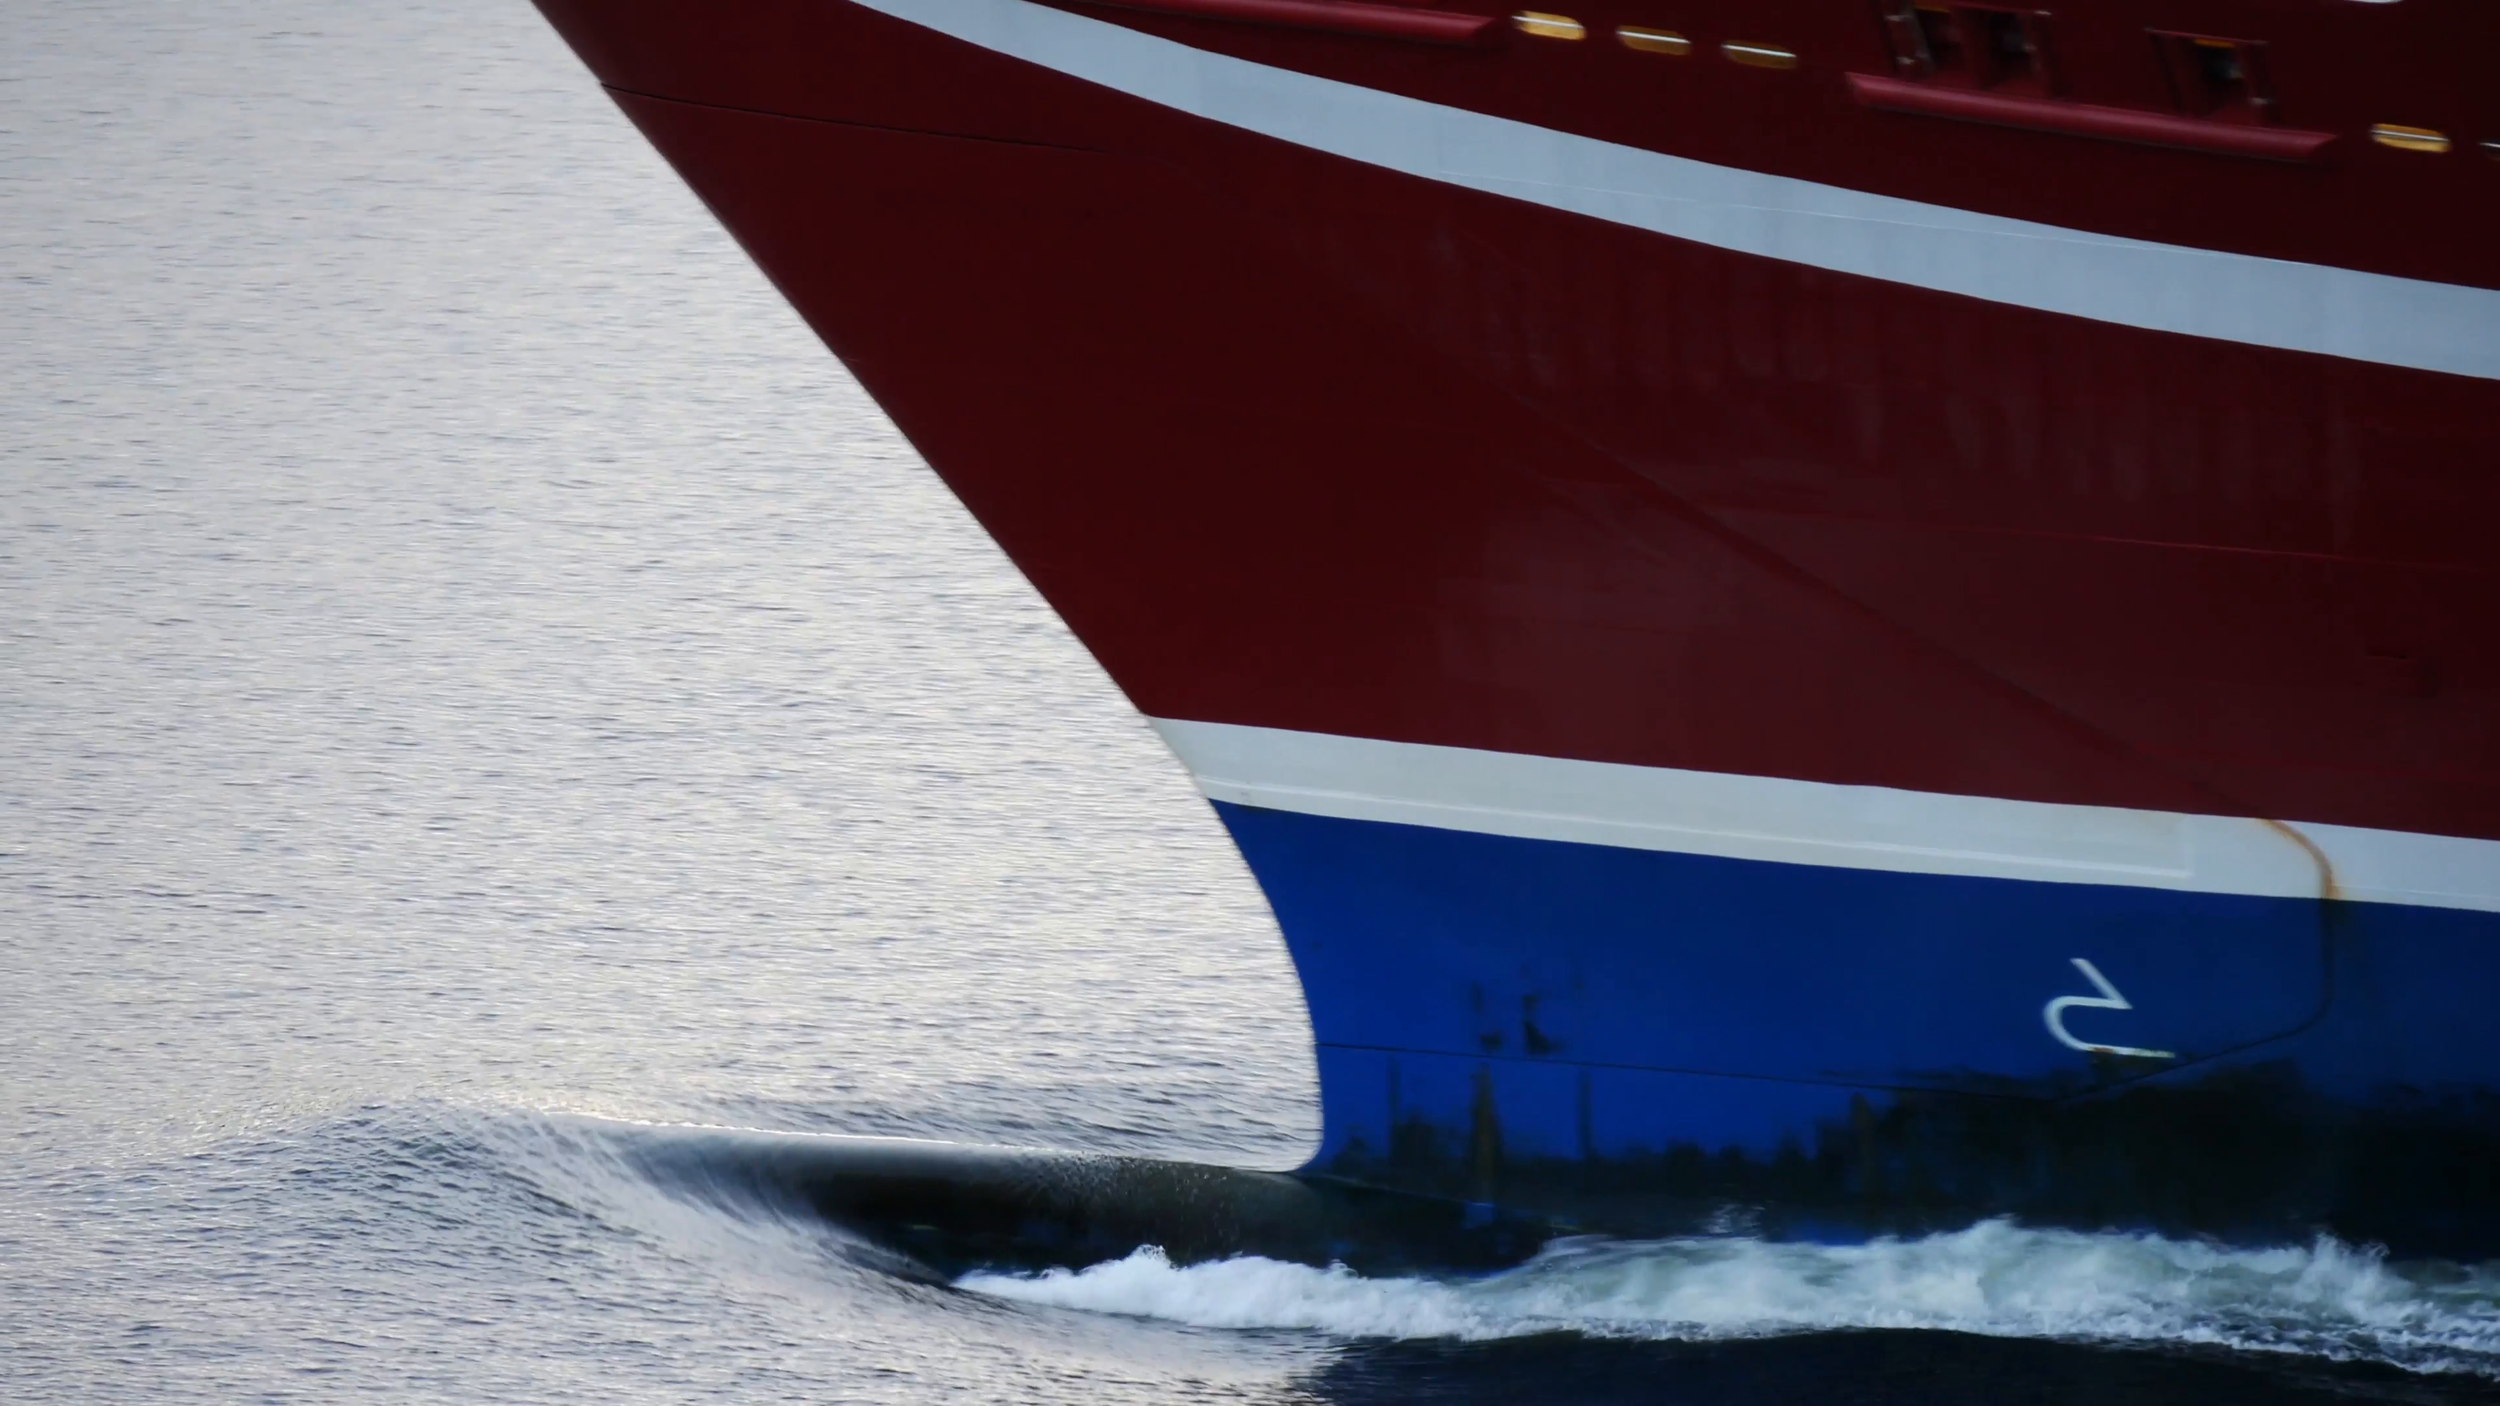 bow-wave-of-a-ship_4wsuh5a9g__F0000.png